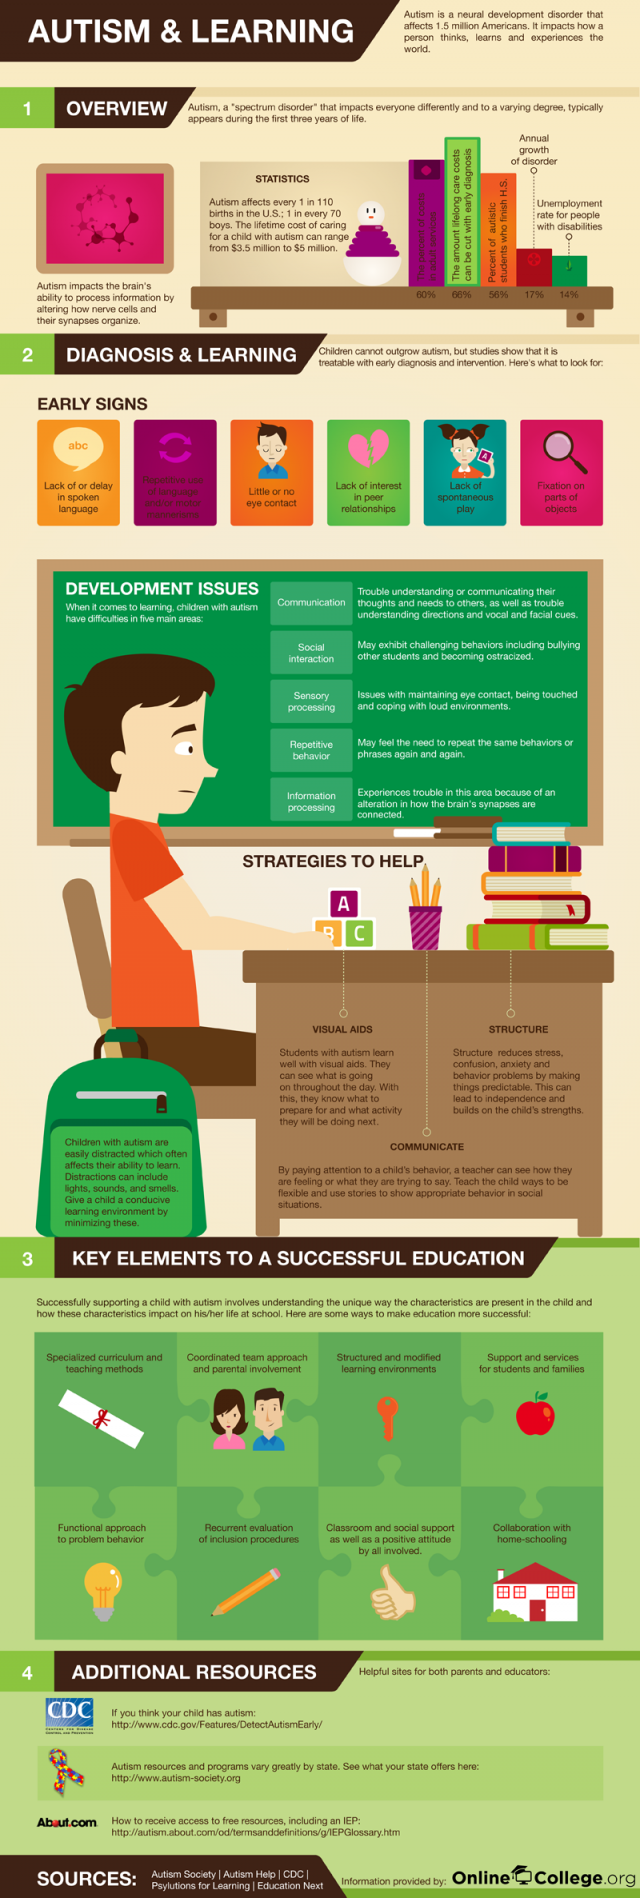 Autism-and-Learning-Infographic (1)